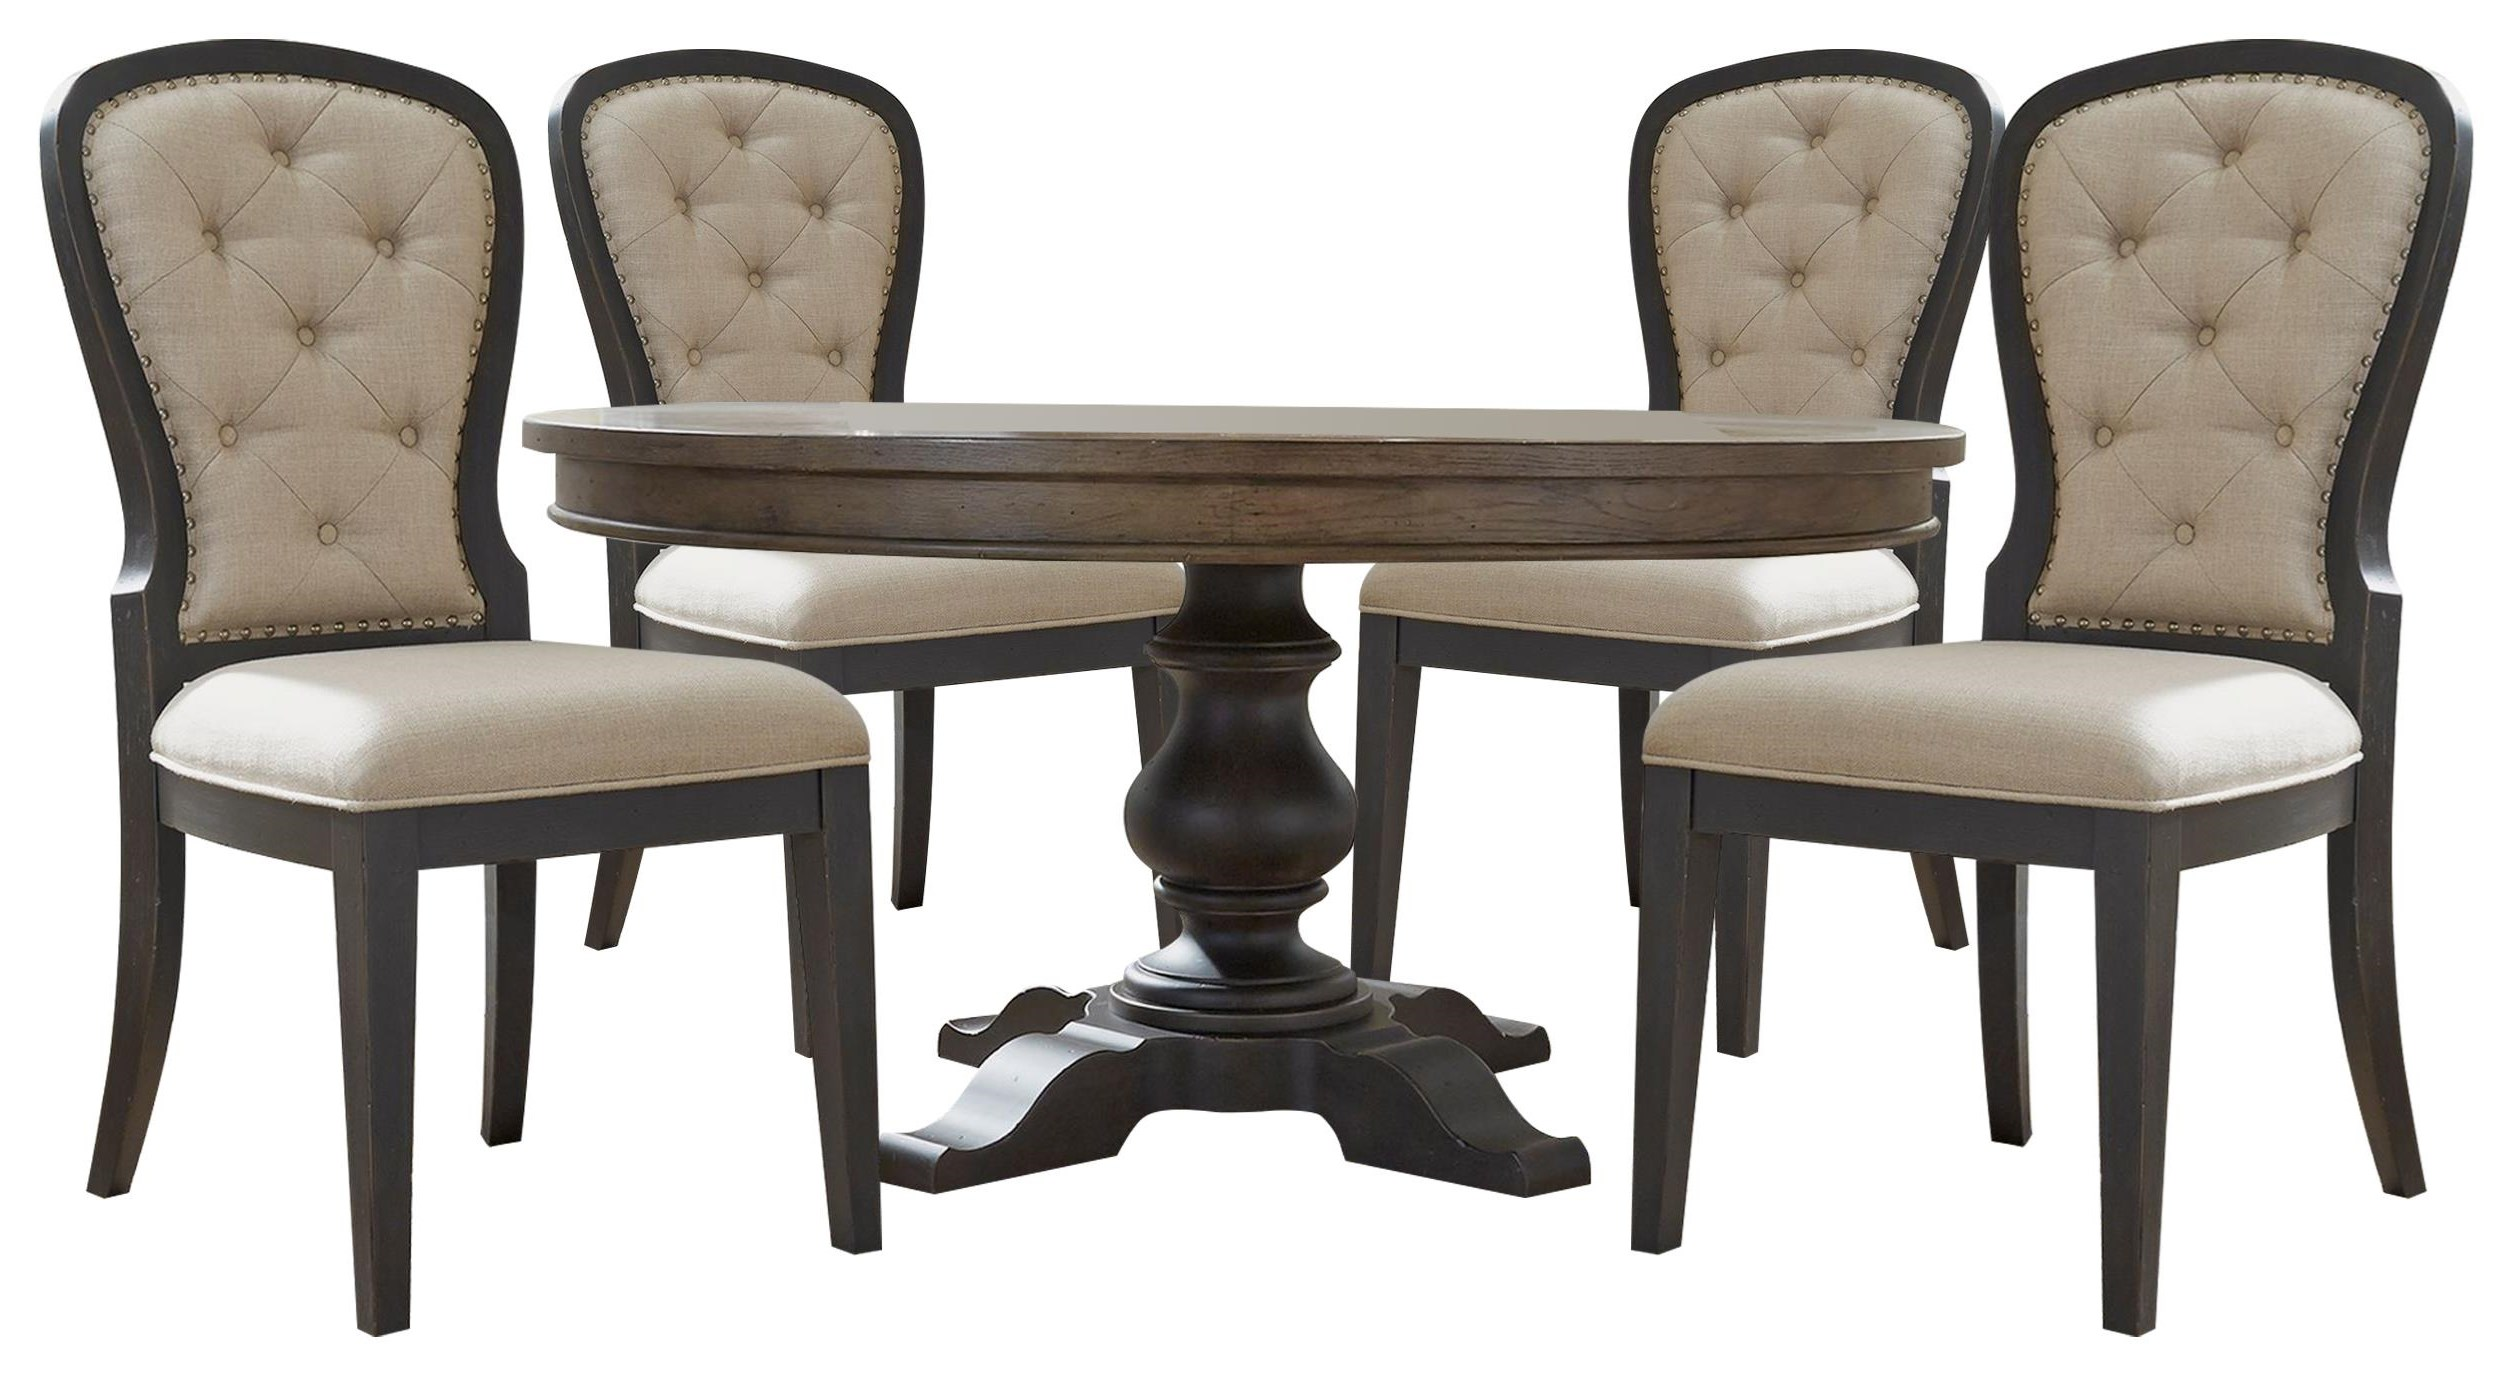 Americana Farmhouse 60 inch Table and Chairs by Liberty Furniture at Johnny Janosik